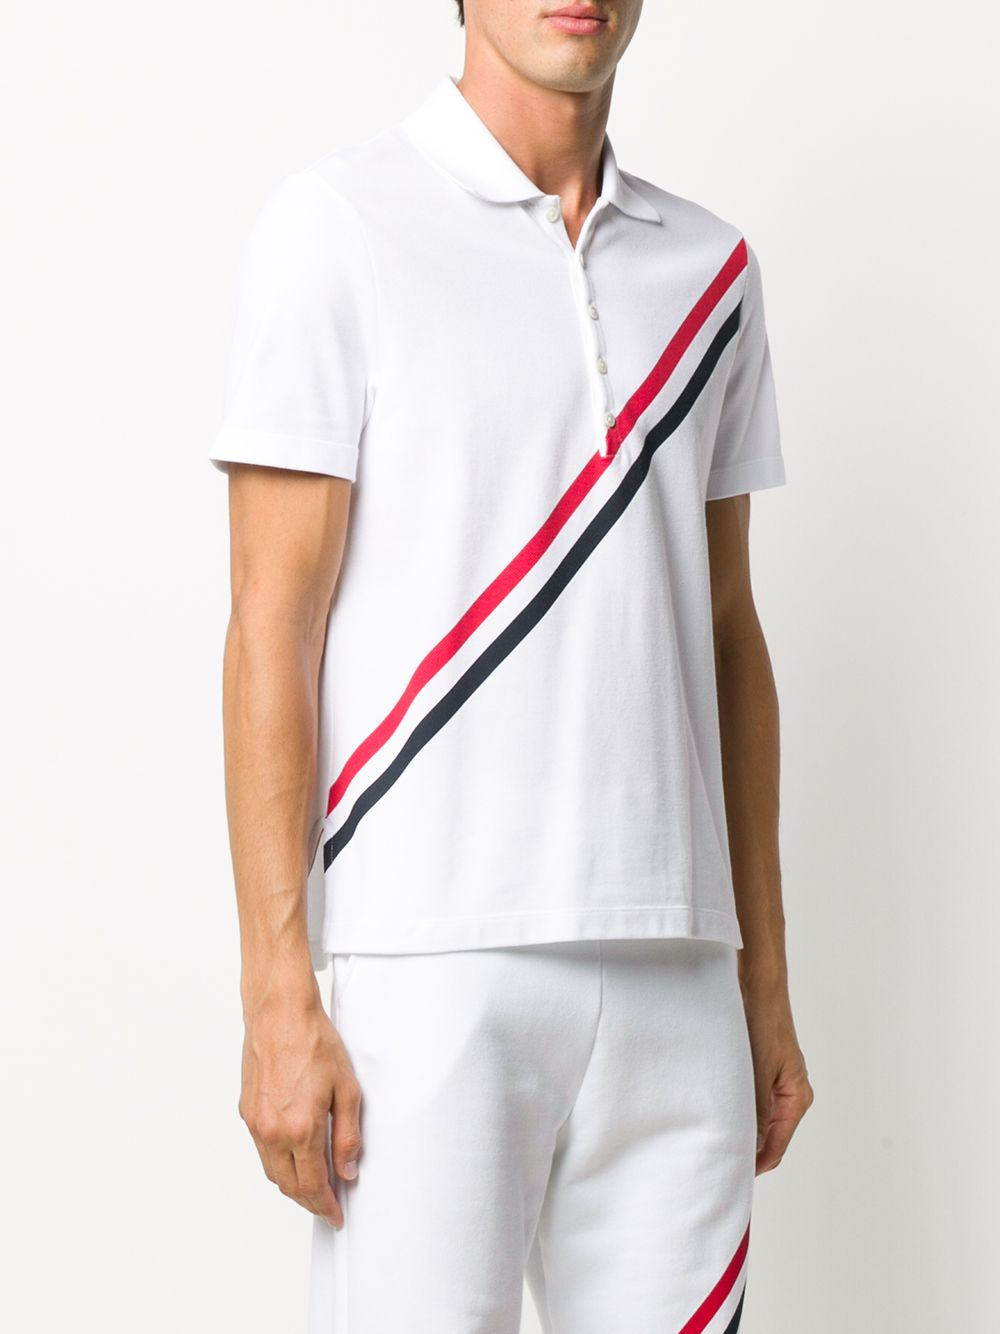 THOM BROWNE MEN SHORT SLEEVE POLO W/ PRINTED RWB DIAGONAL STRIPE IN CLASSIC PIQUE